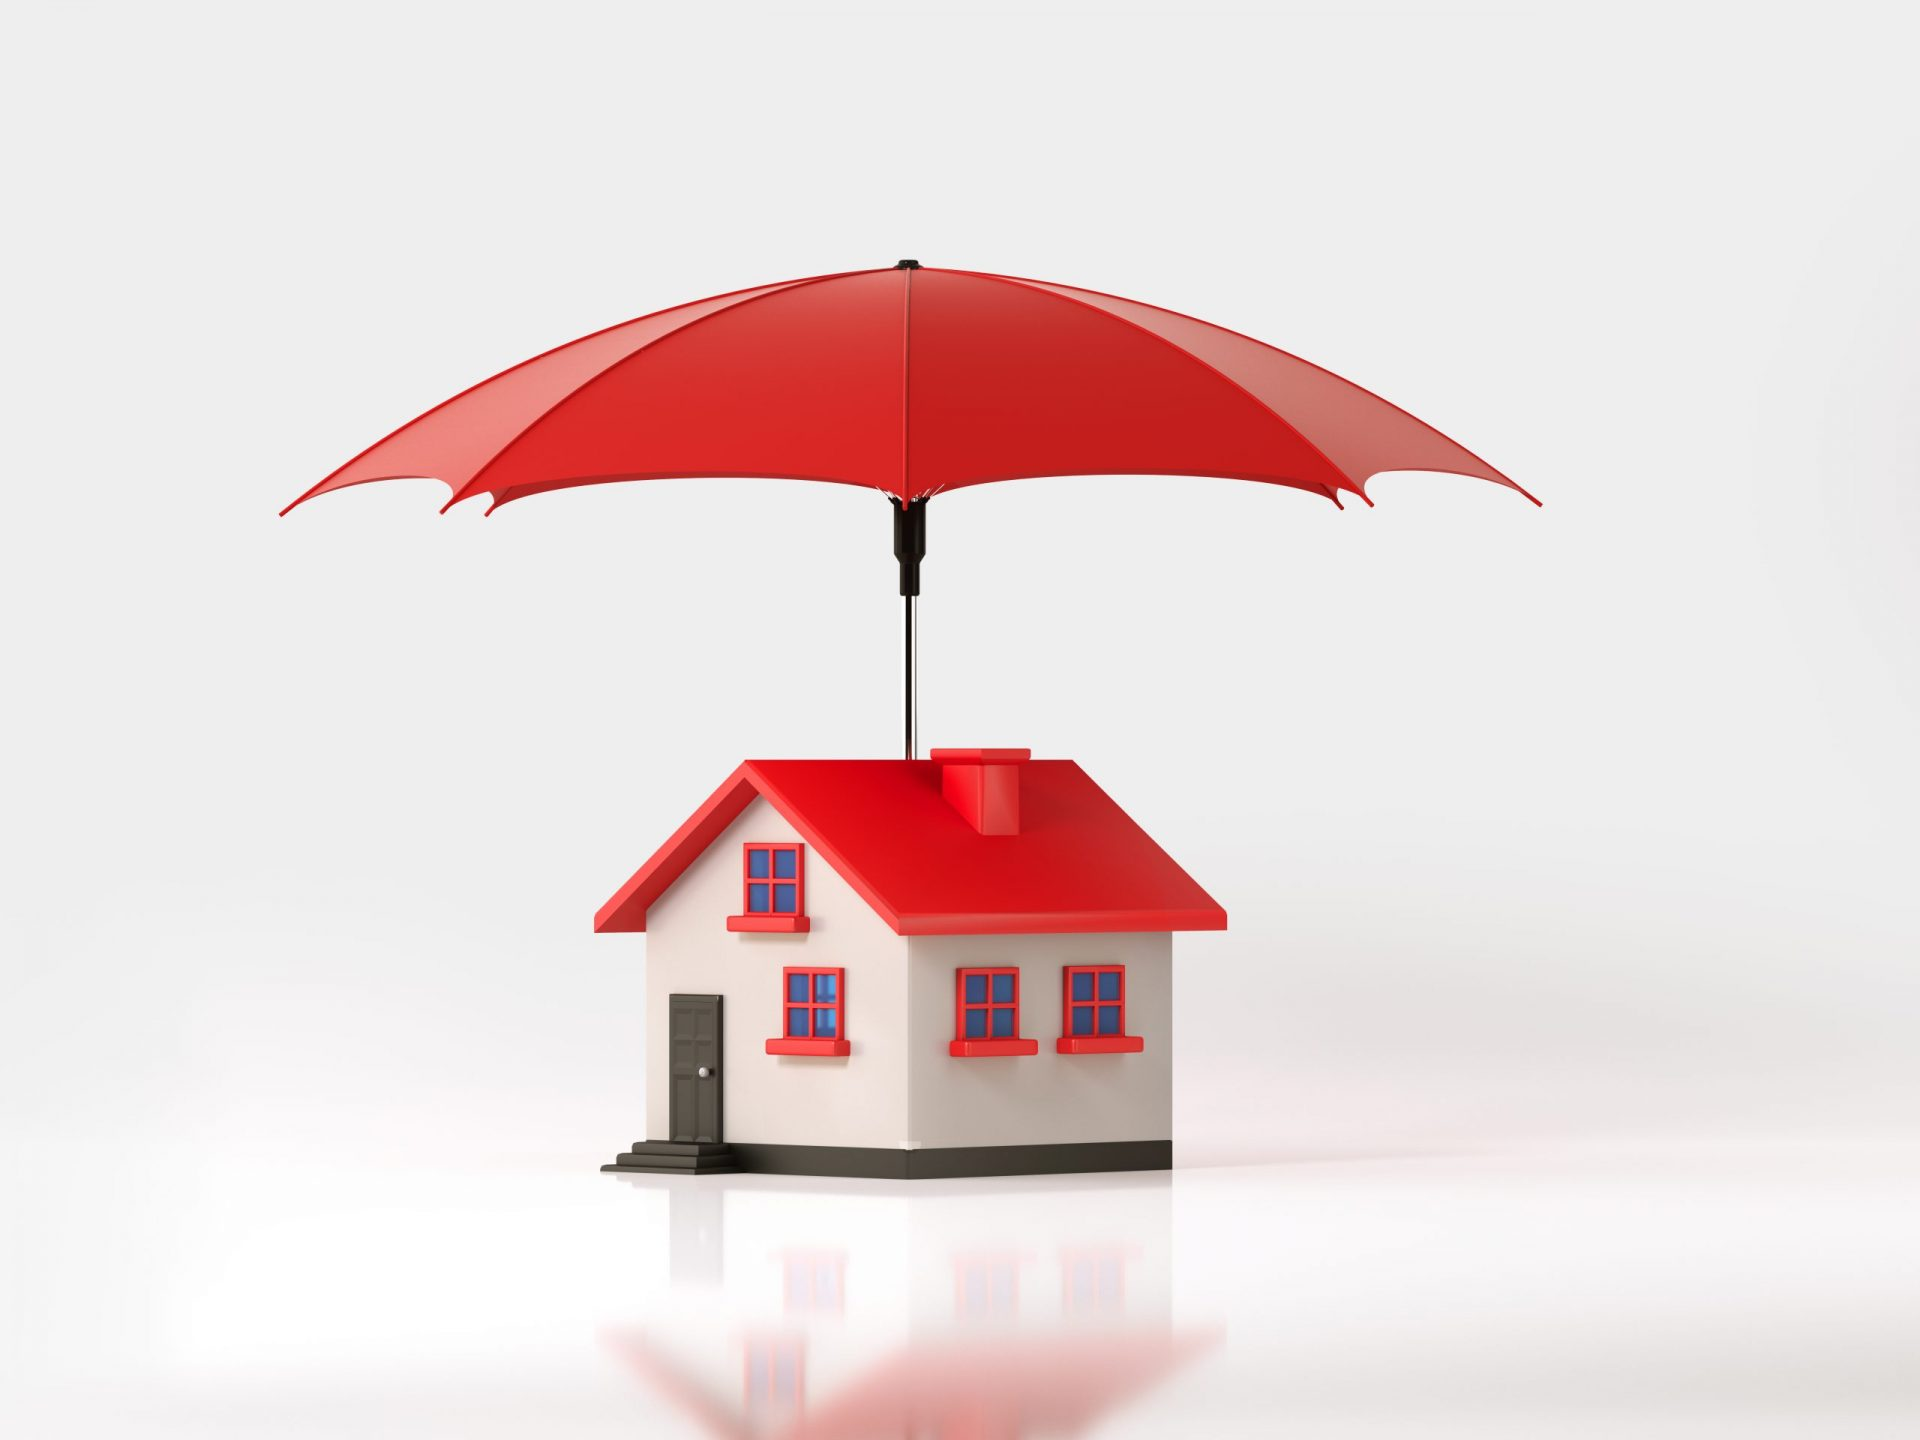 Red umbrella is protecting a toy house on white background. Horizontal composition with selective focus and copy space. Insurance and real estate concept.